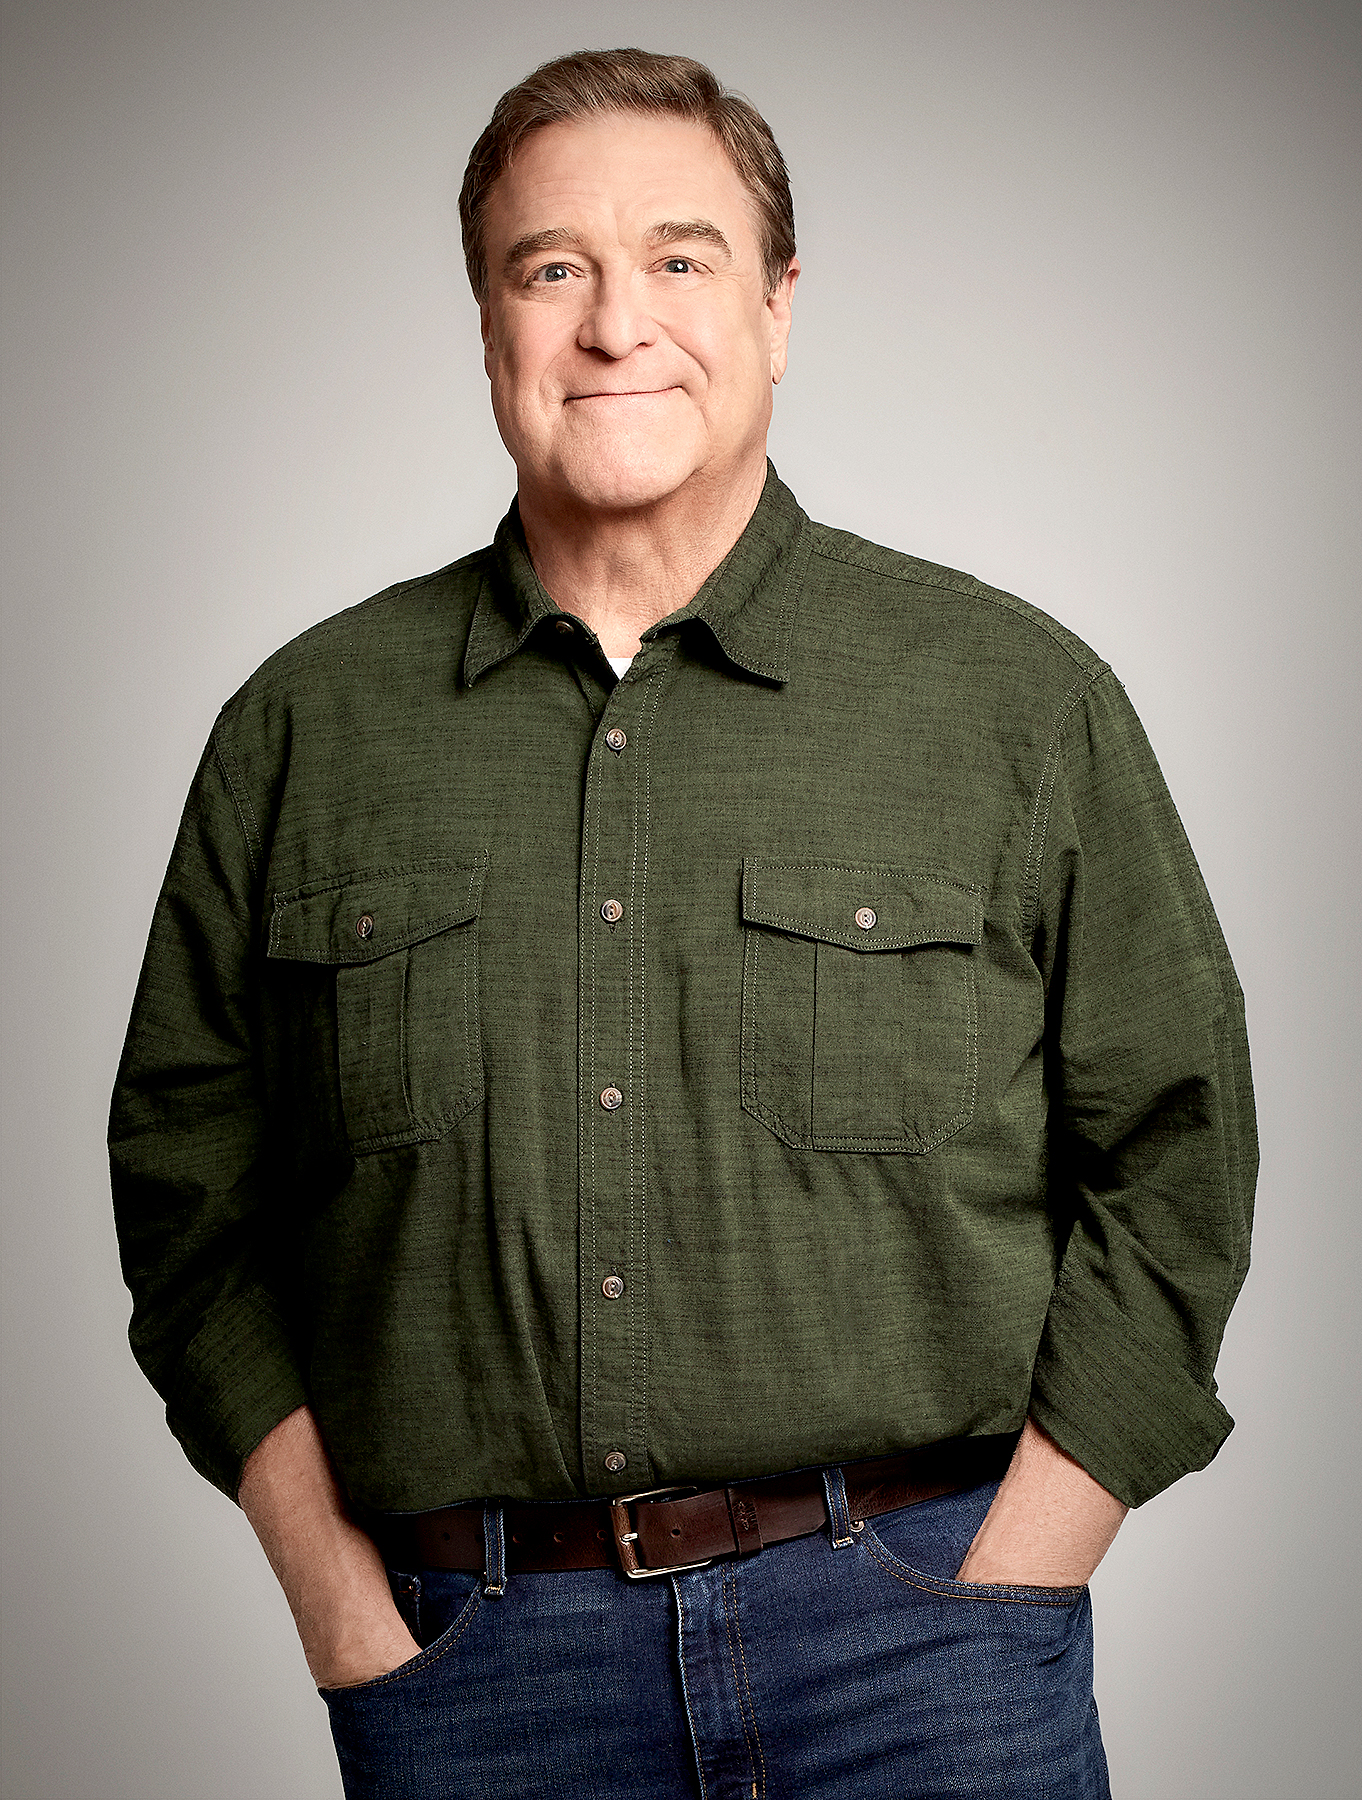 john-goodman-roseanne-conners - After Roseanne was canceled and the ABC revival was rebooted as The Conners , it could have gone two ways. However, thanks to the powerful cast, it seamlessly transitioned.